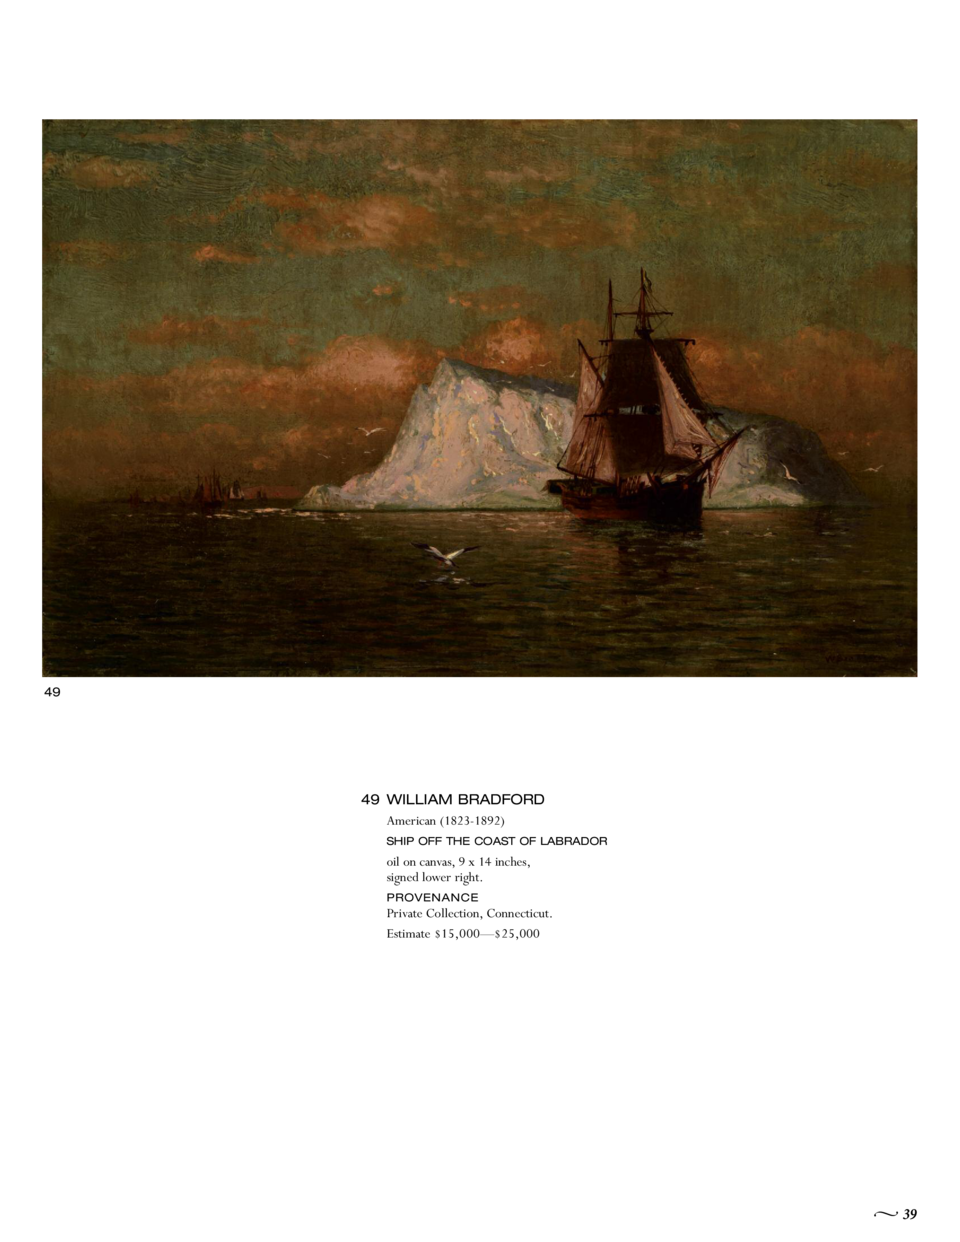 49  49 WILLIAM BRADFORD American  1823-1892  SHIP OFF THE COAST OF LABRADOR  oil on canvas, 9 x 14 inches, signed lower ri...